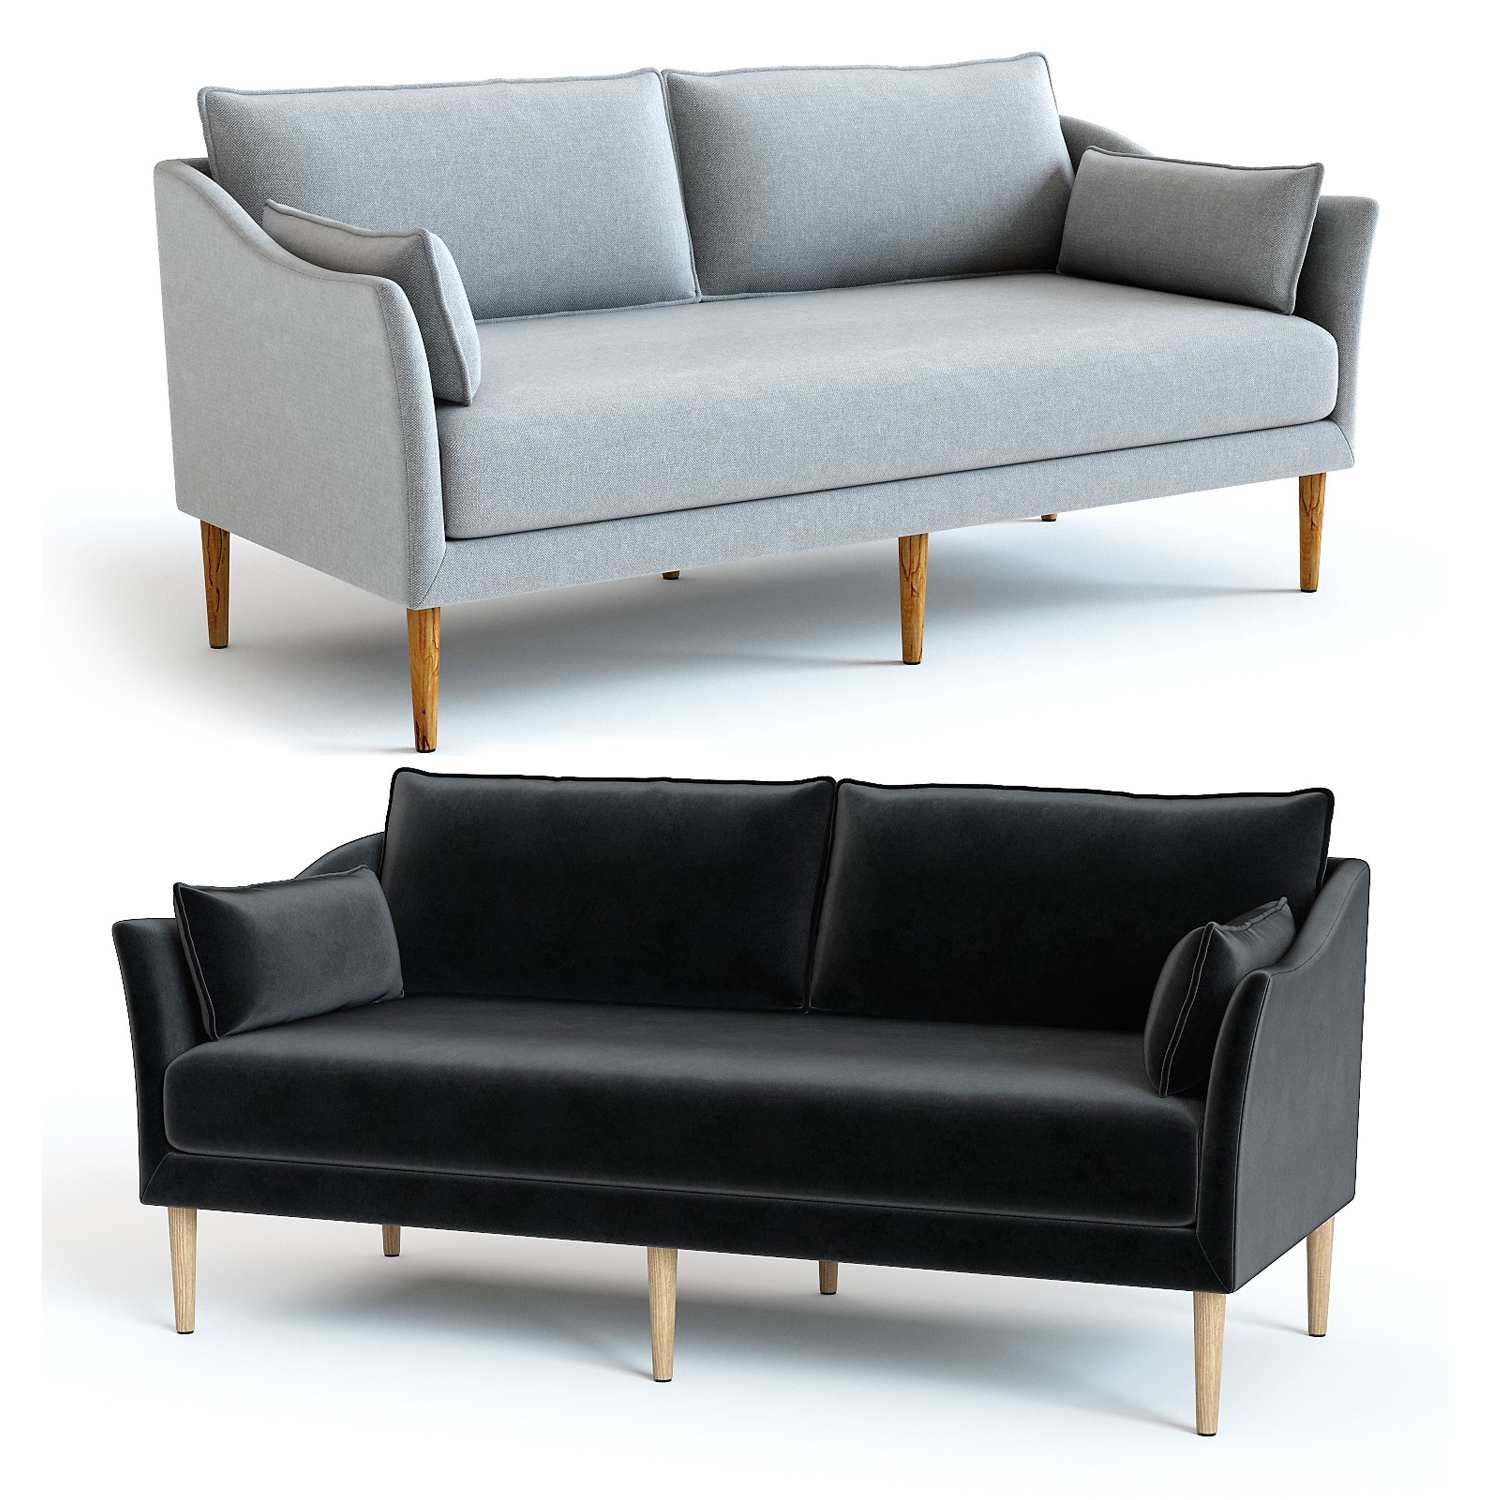 Astonishing West Elm Antwerp Loveseat Caraccident5 Cool Chair Designs And Ideas Caraccident5Info